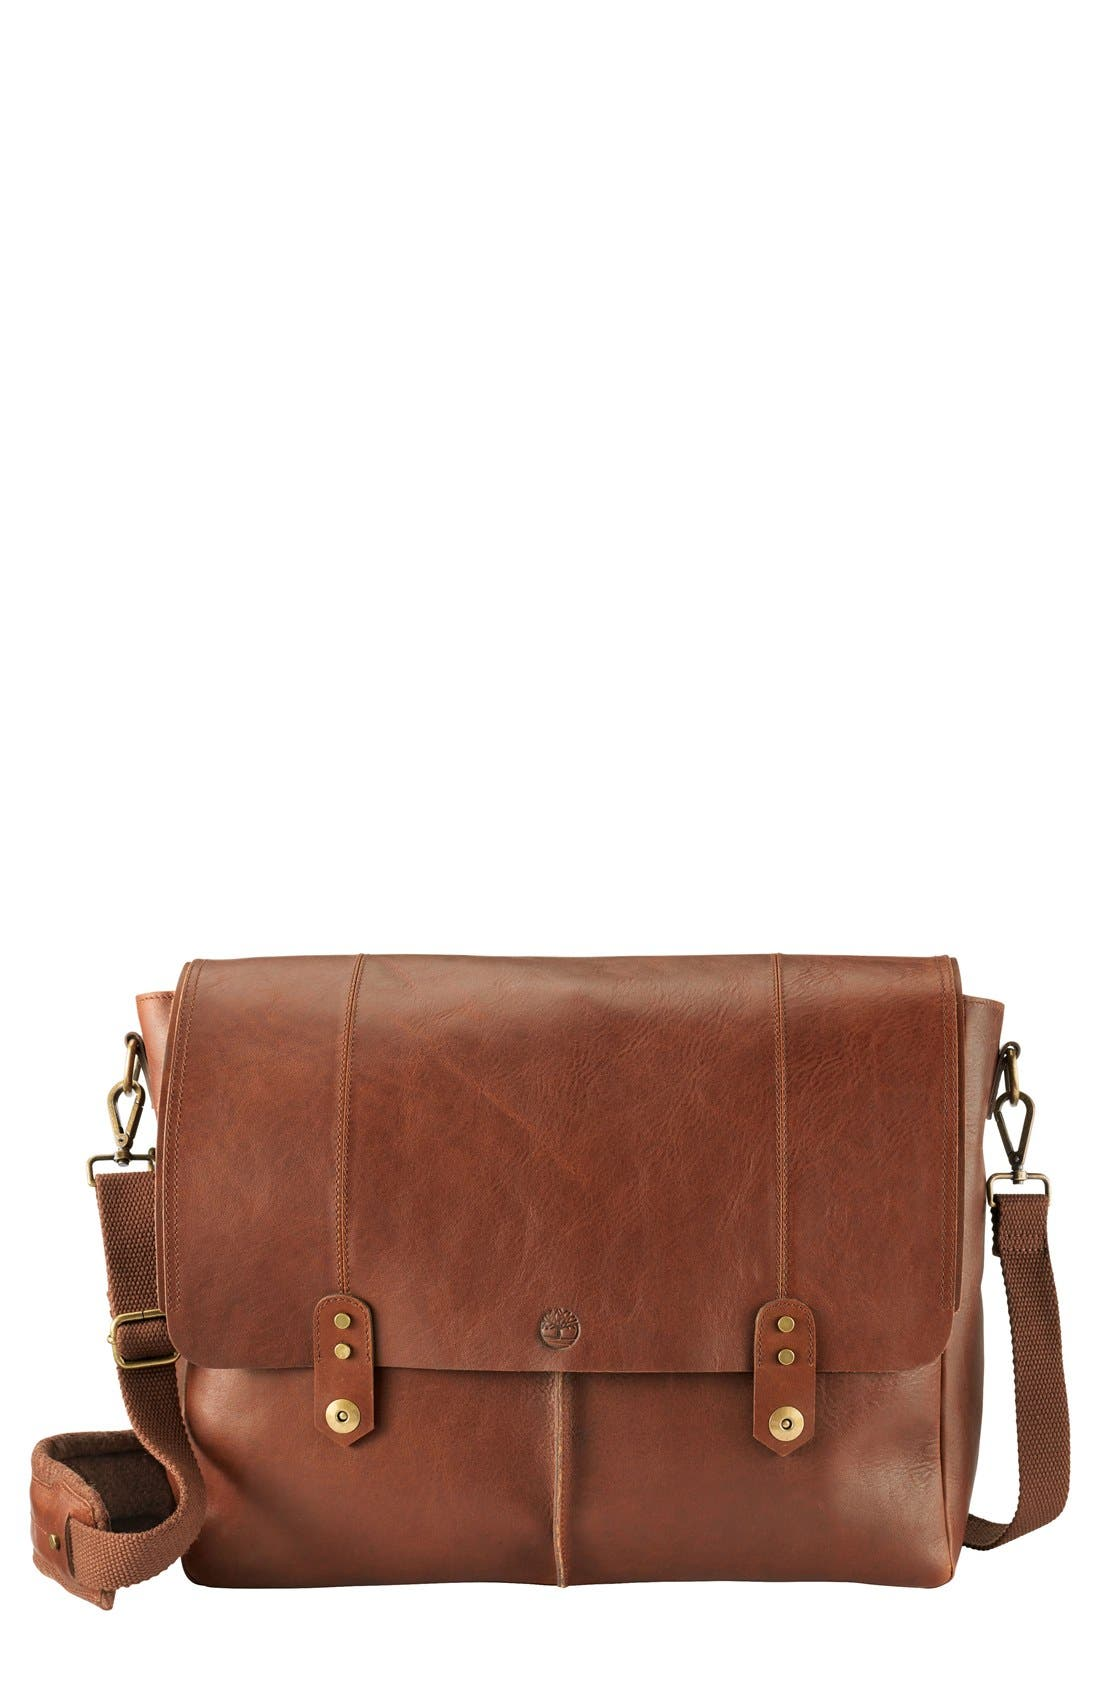 Main Image - Timberland 'Walnut Hill' Leather Messenger Bag